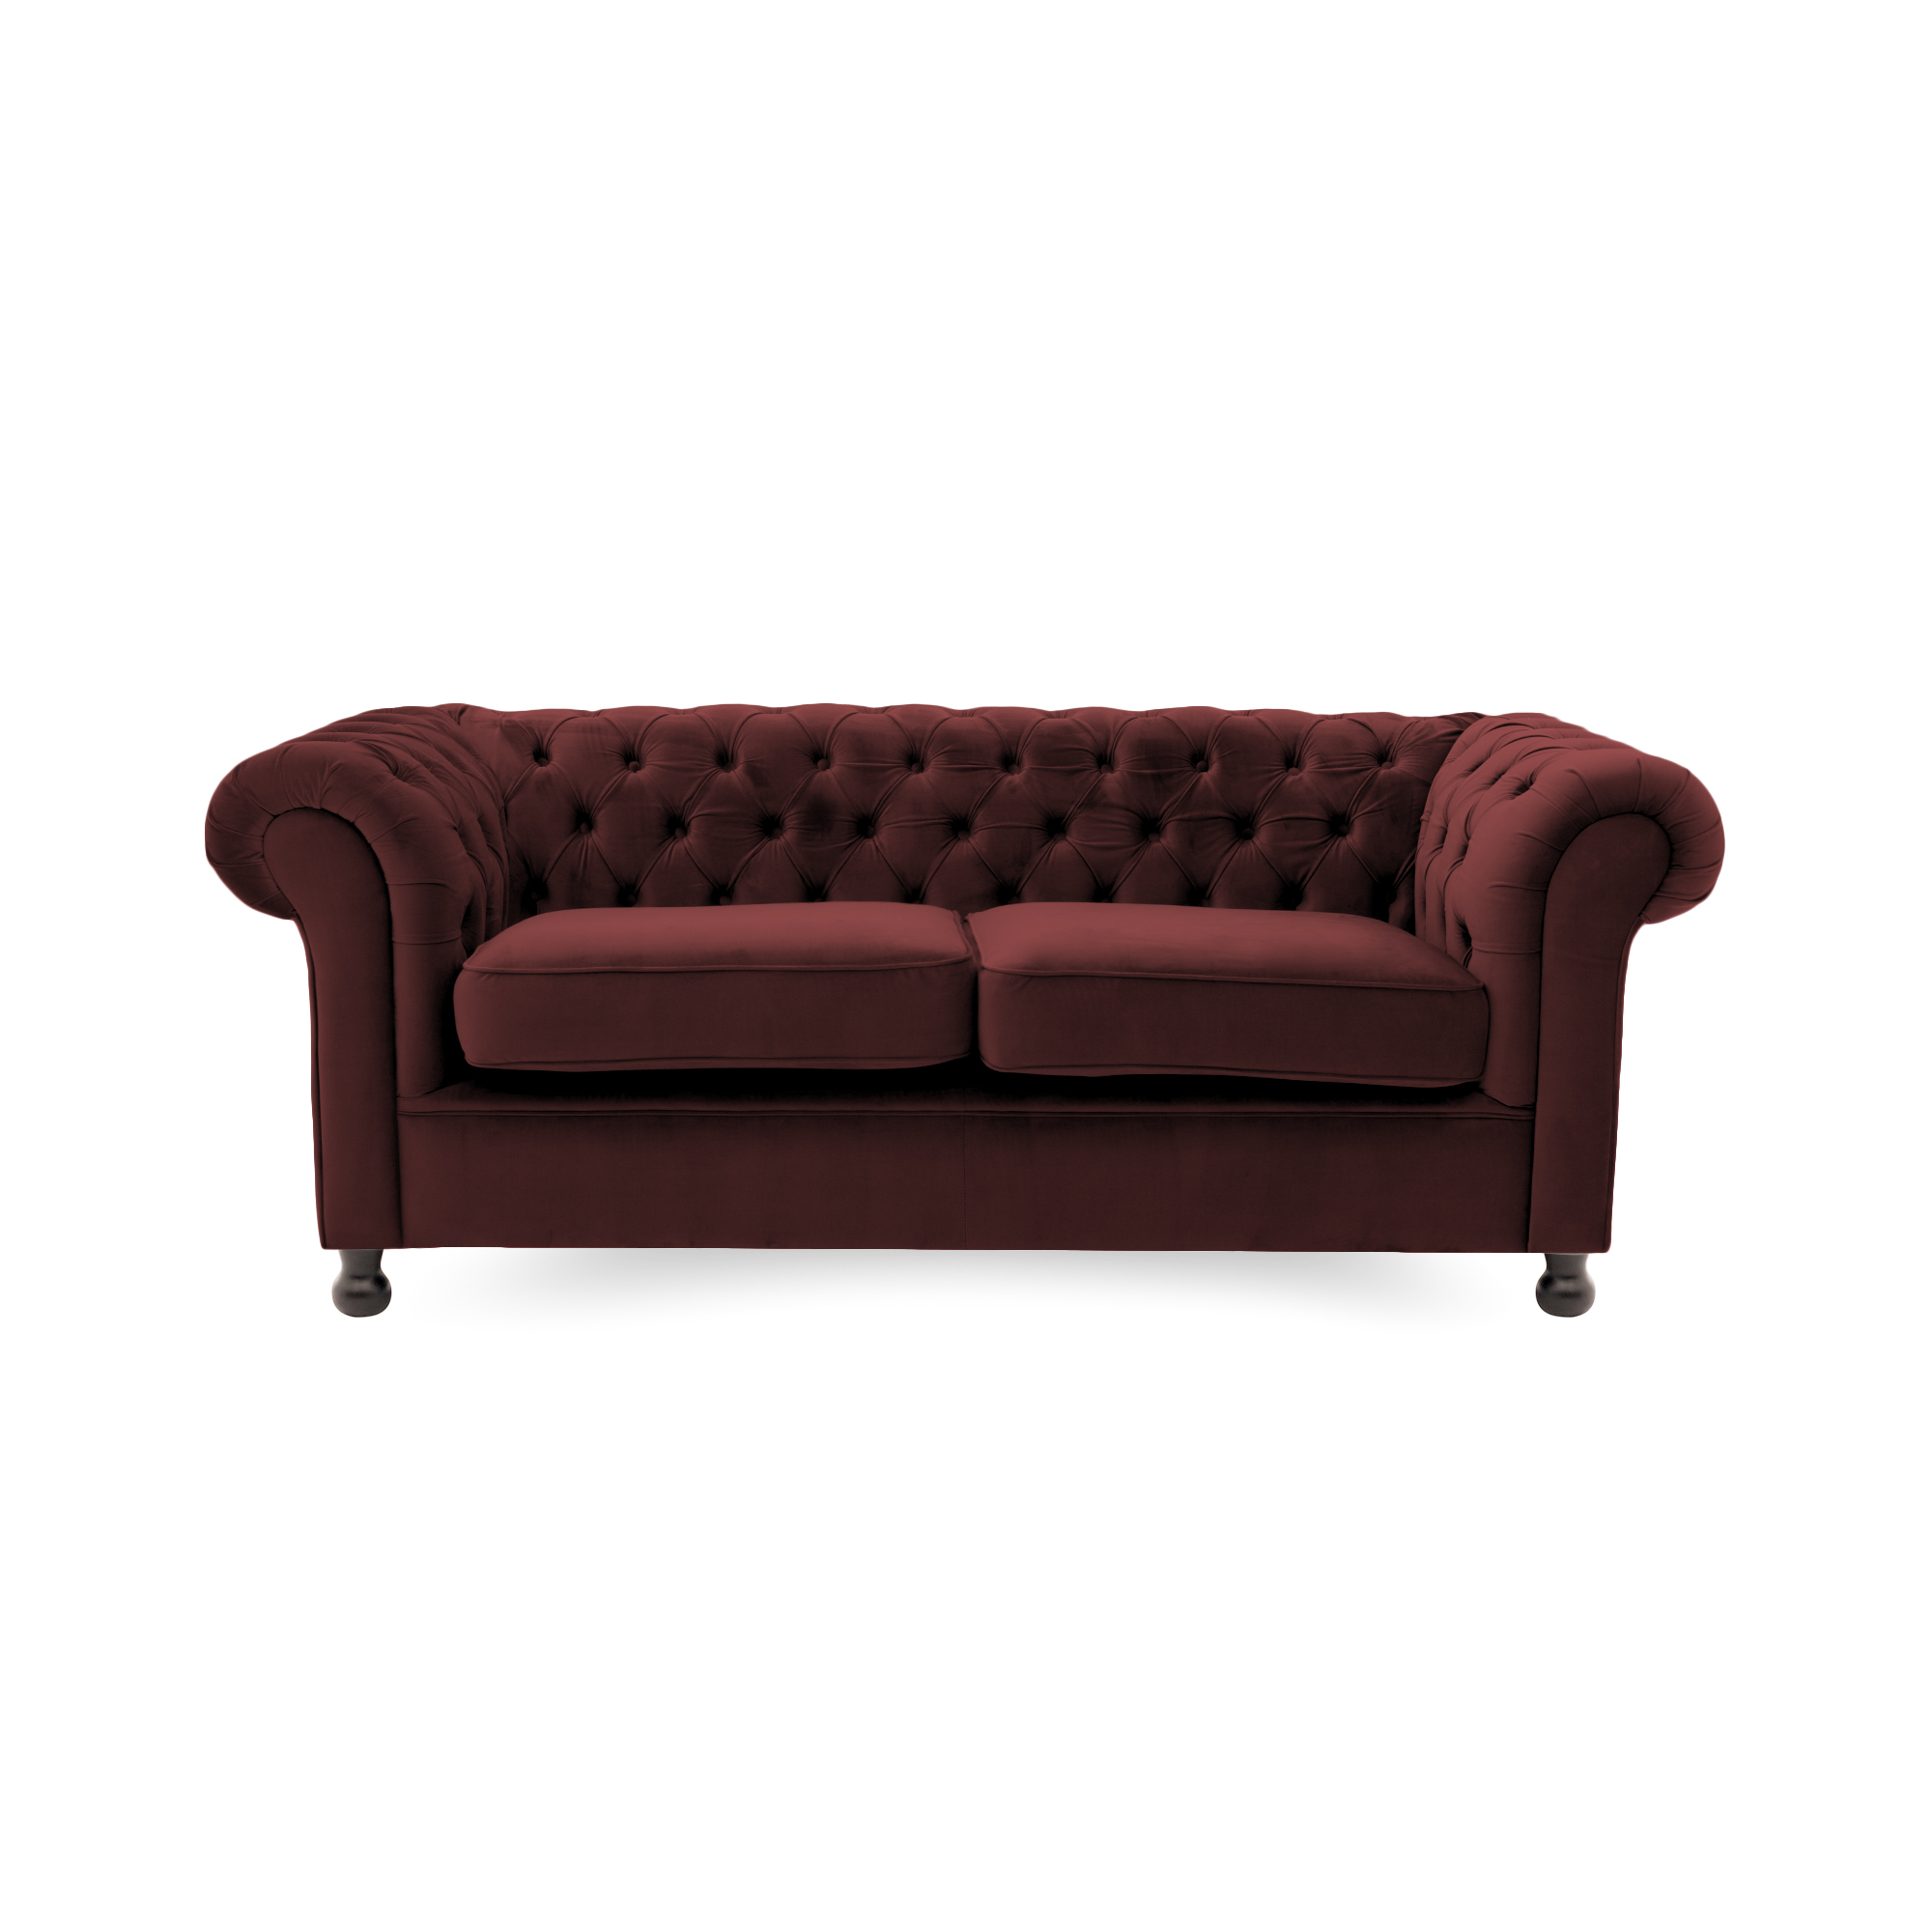 Canapea Fixa 3 locuri Chesterfield Burgundy Red